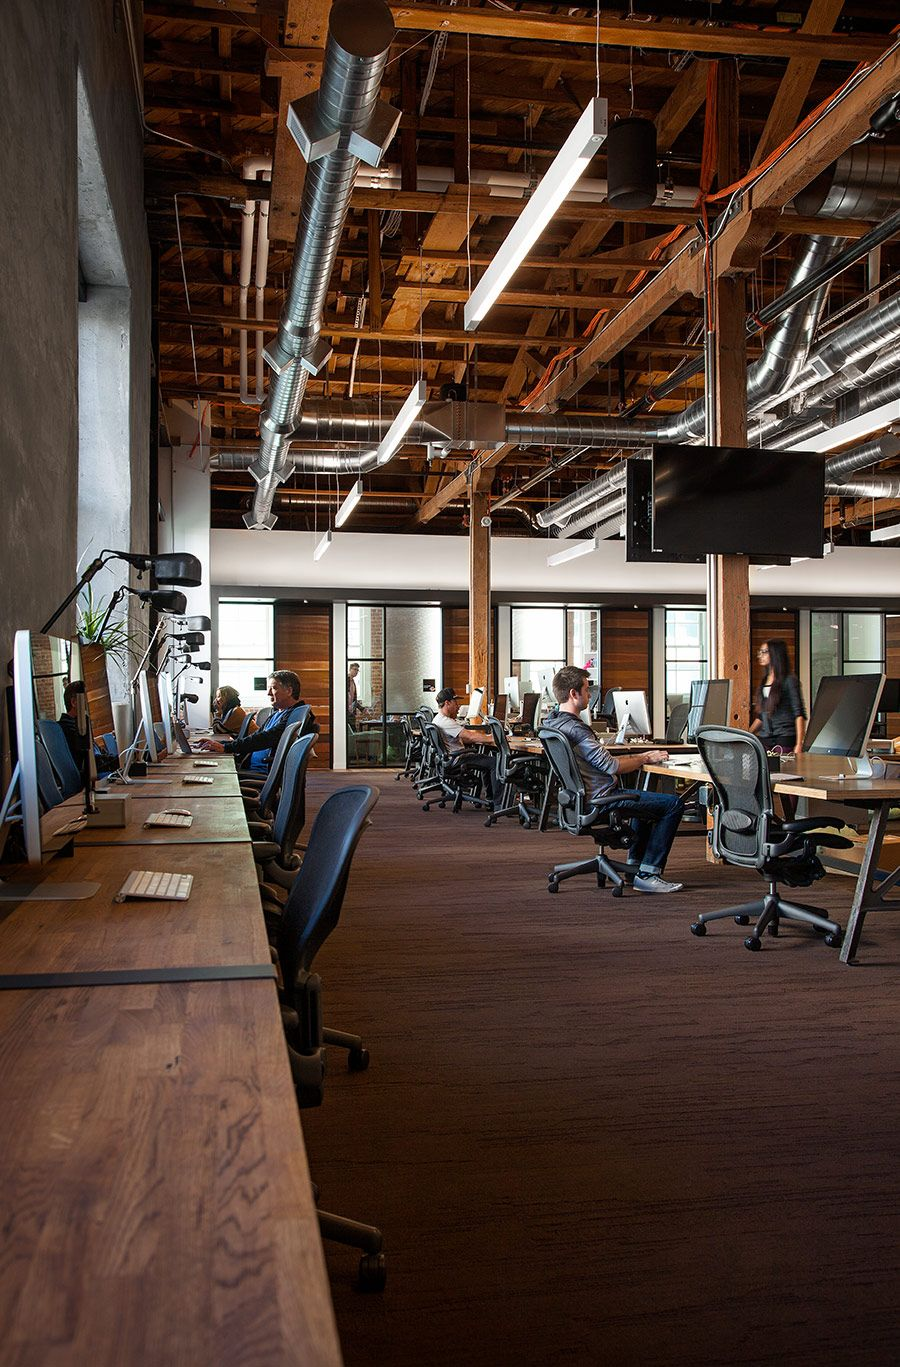 GitHub, a popular web-based hosting service that offers both paid plans for private repositories, and free accounts for open source projects, hired design firms Studio Hatch, MASHstudios and FENNIE+MEHL Architects to design their new offices ... Read More